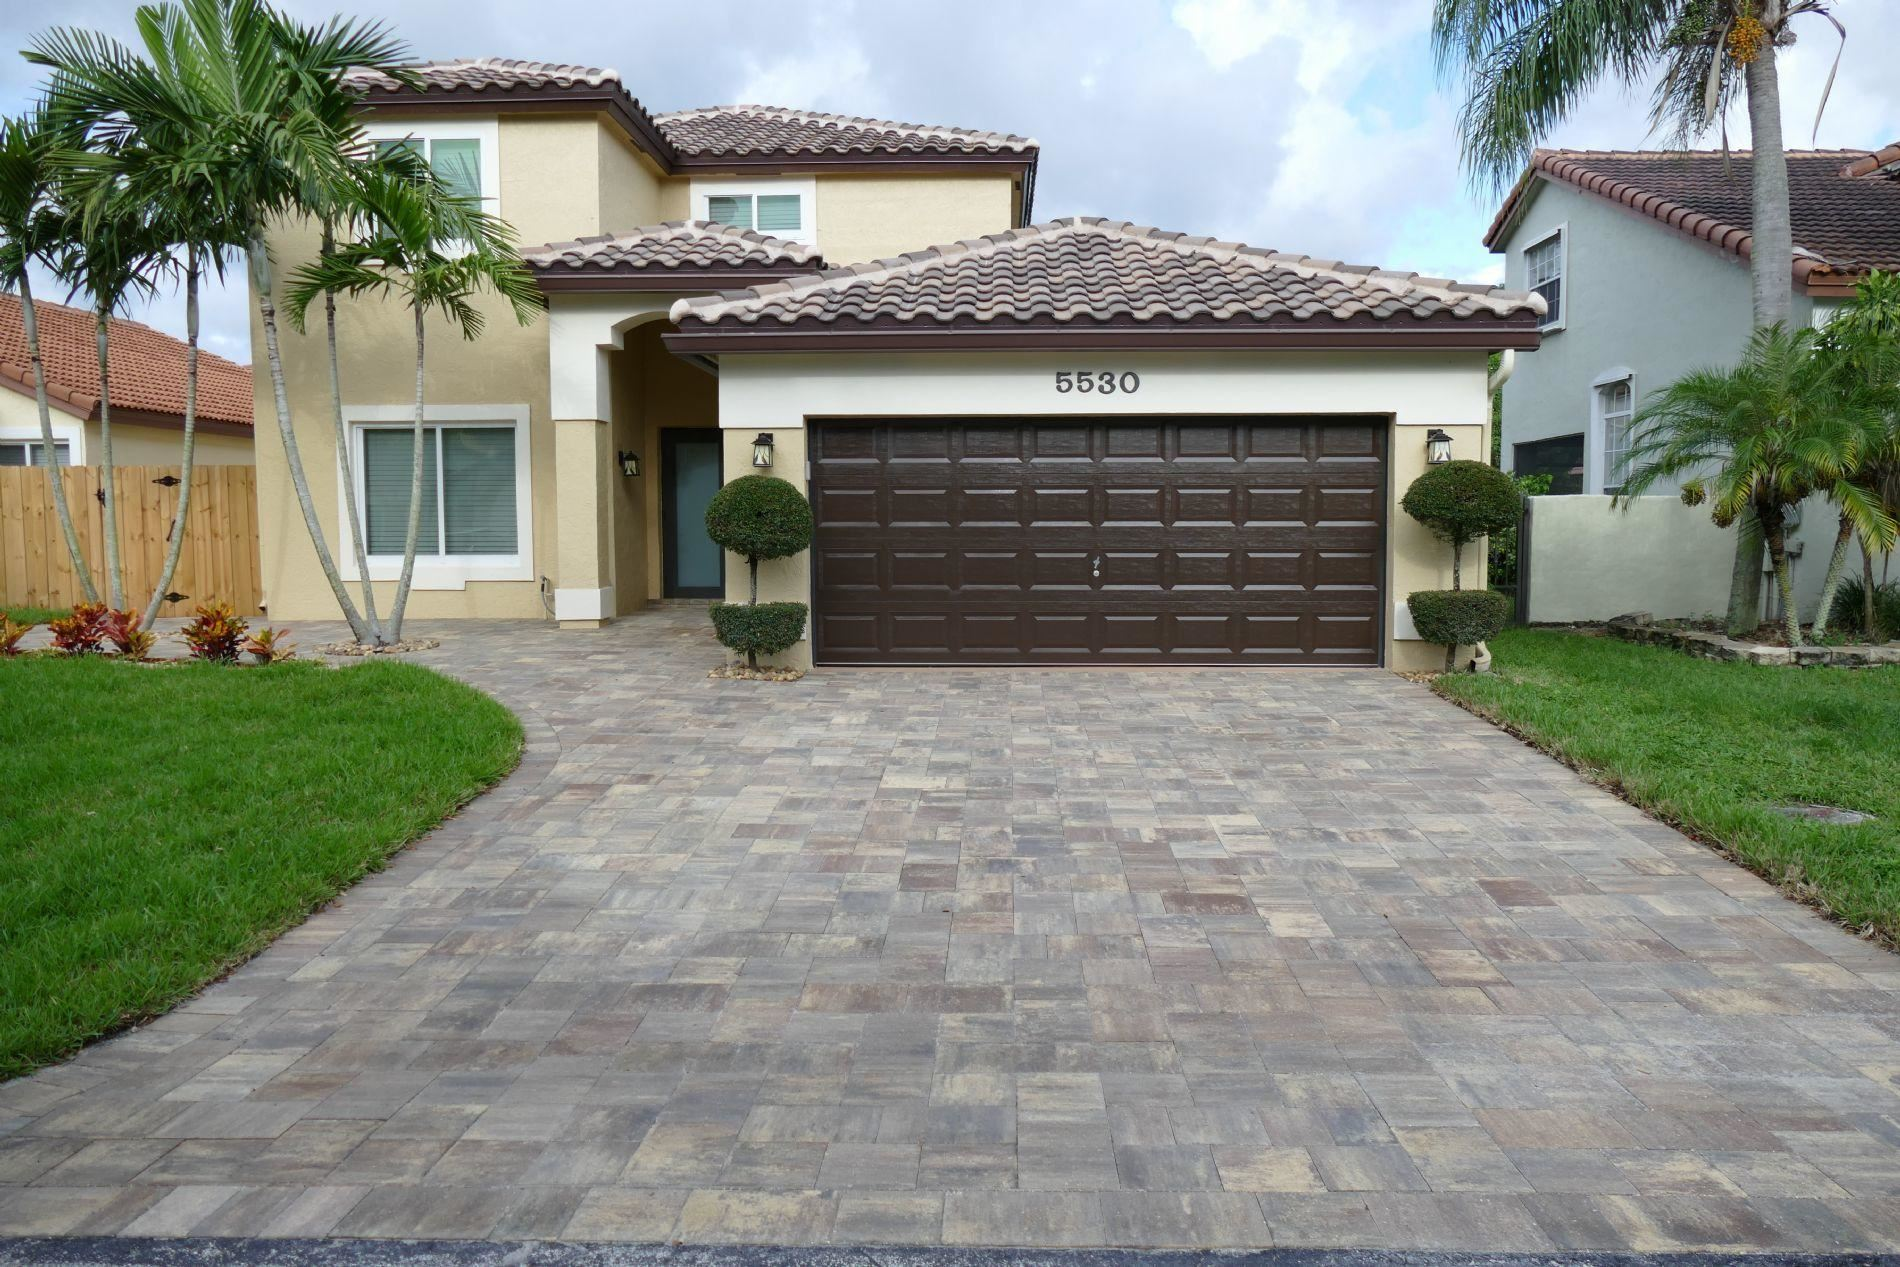 5530 NW 51st Avenue, Coconut Creek, FL 33073 - #: RX-10635311